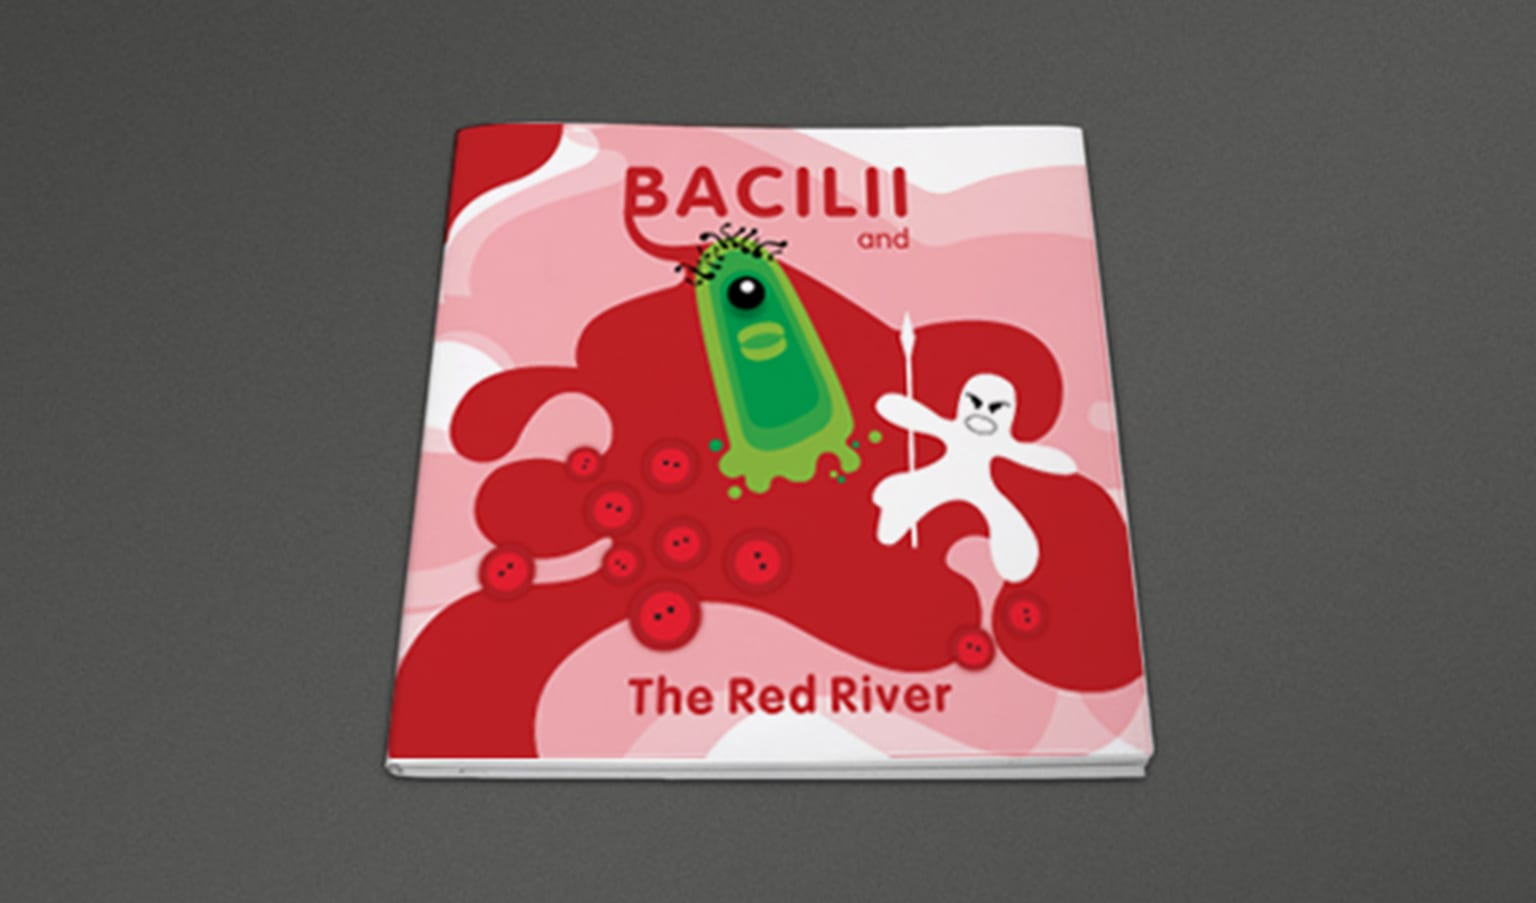 Bacilli and The Red River